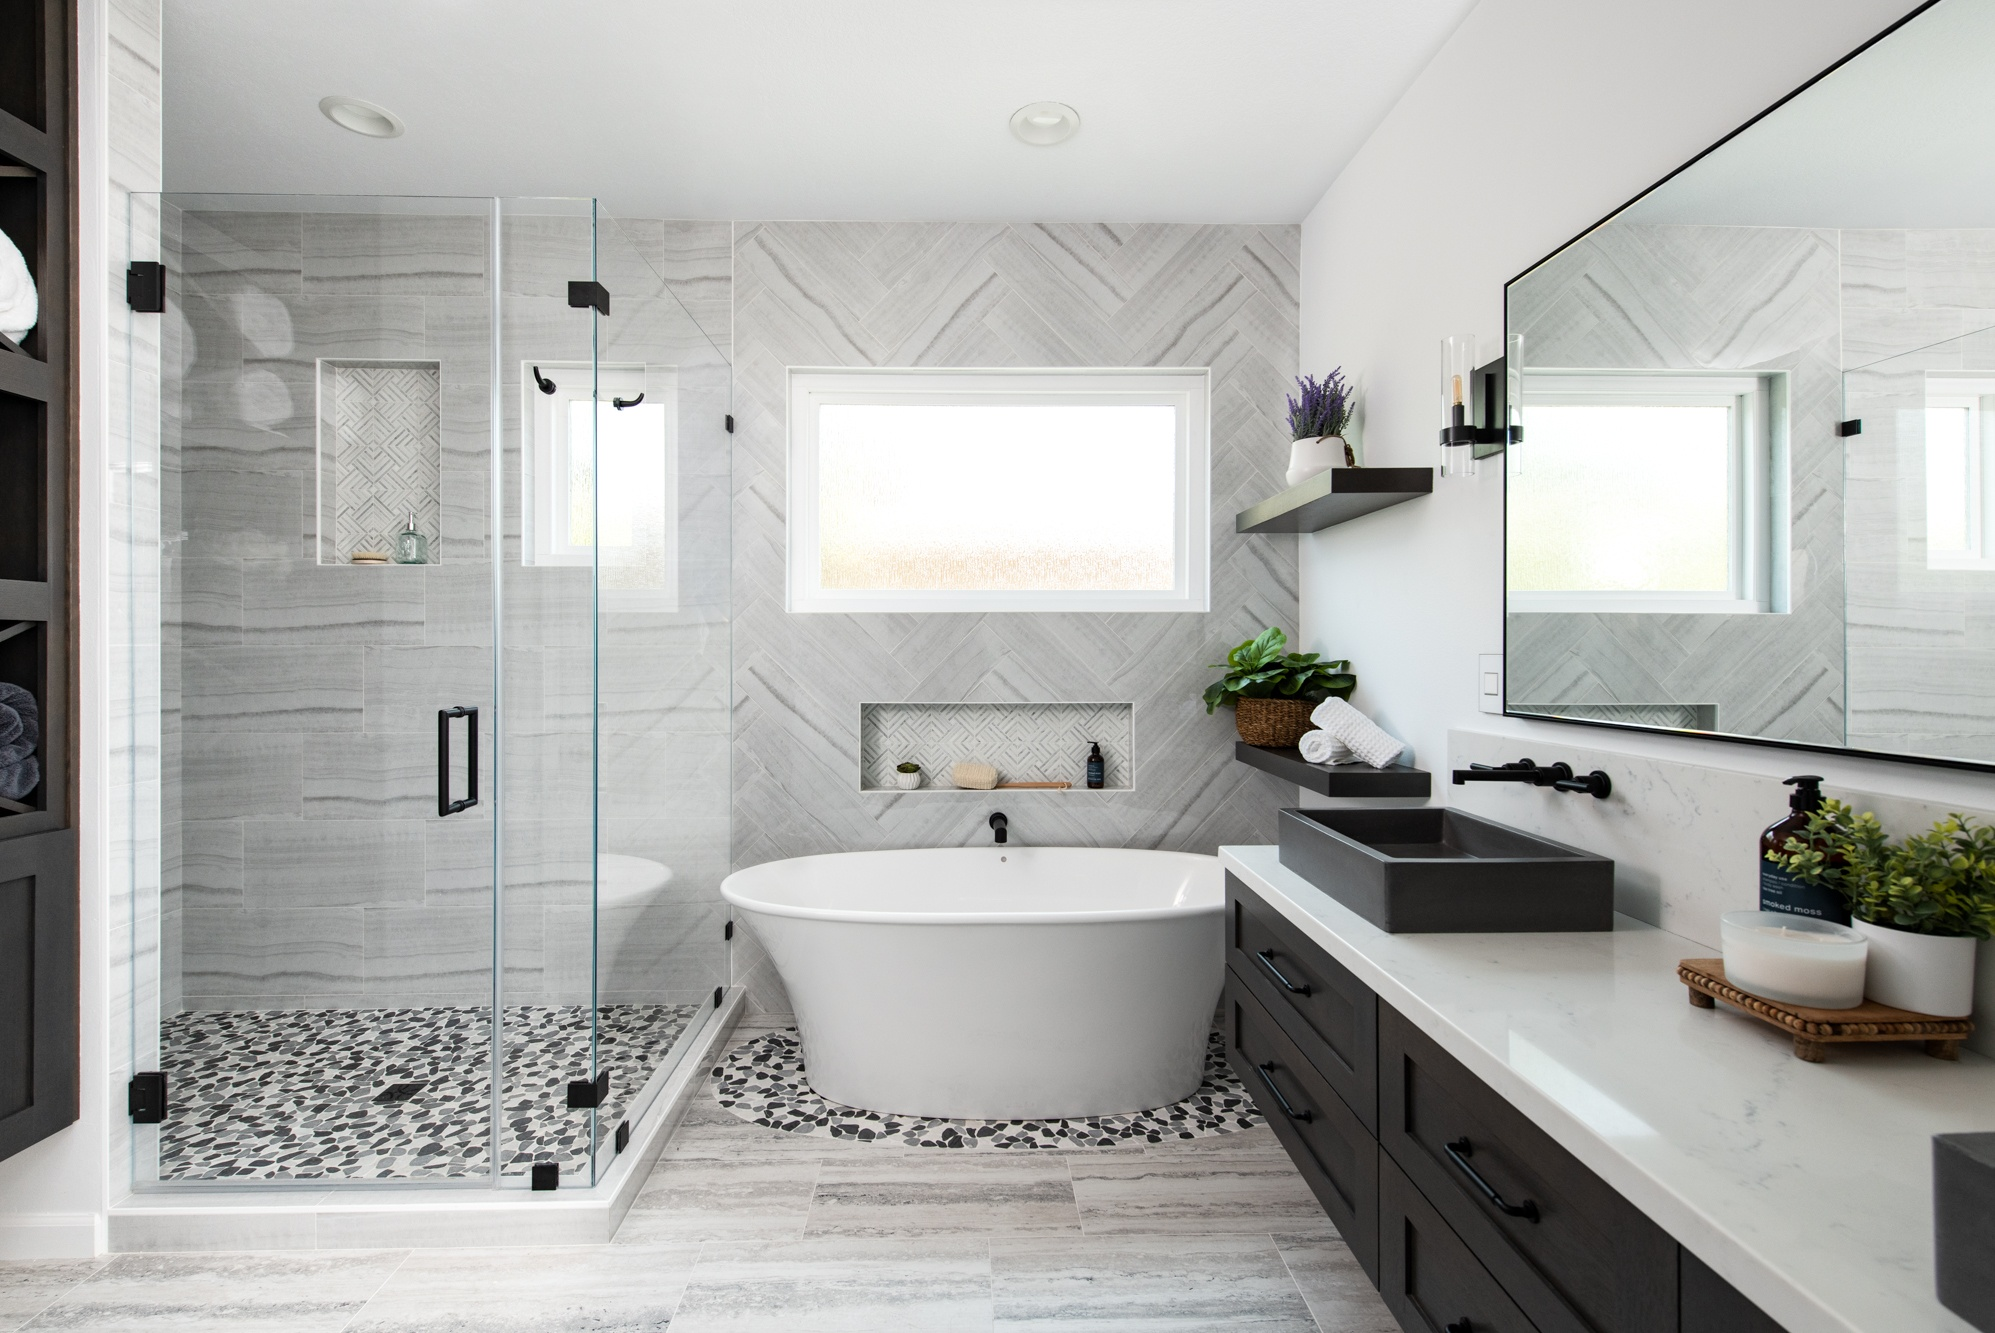 WHY YOU NEED TO HIRE A BATHROOM RENOVATION CONTRACTOR